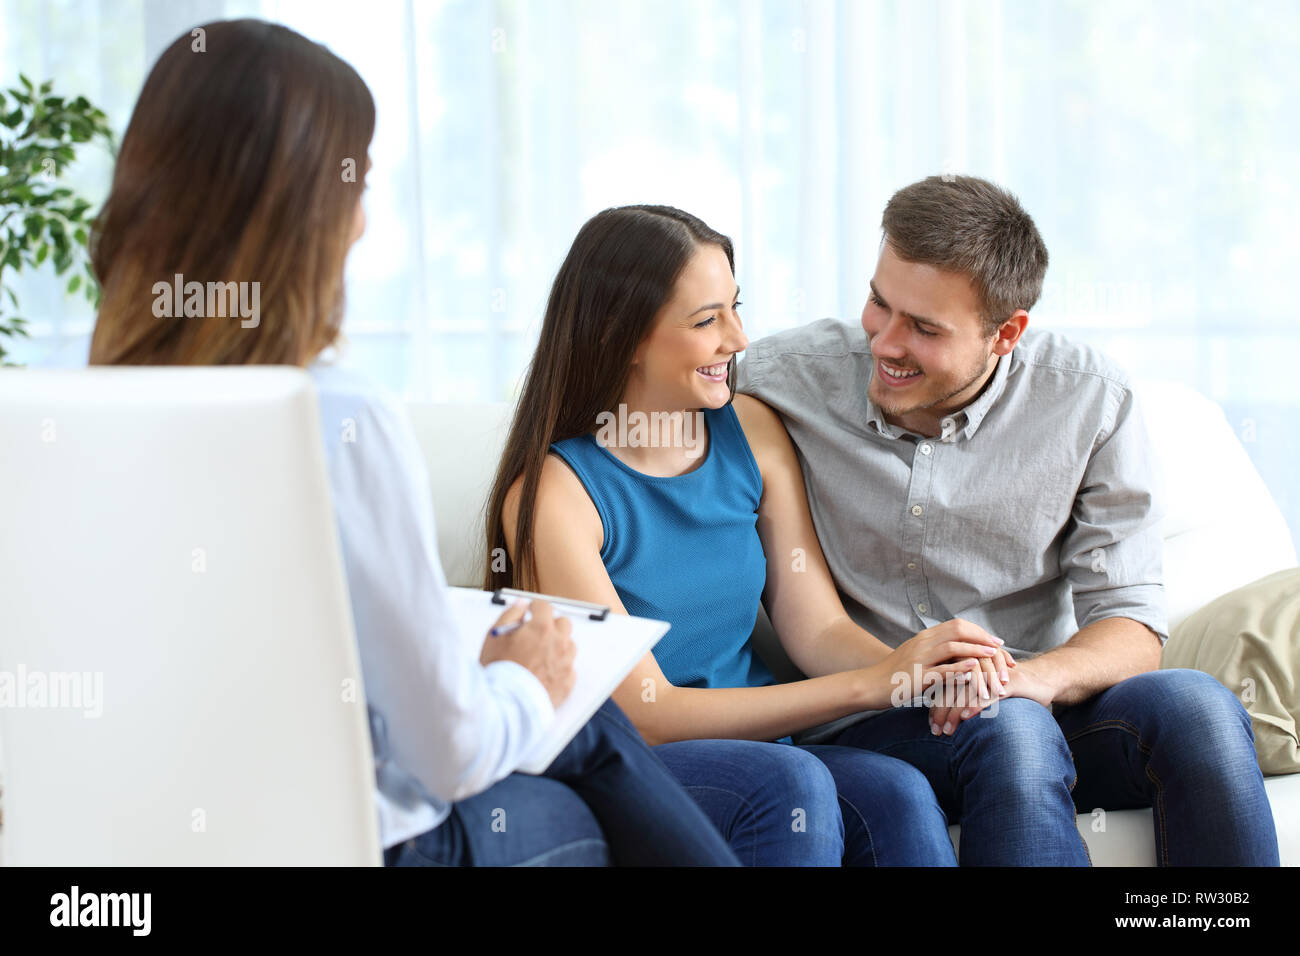 Happy marriage after couple therapy sitting on a couch at home or consultation - Stock Image